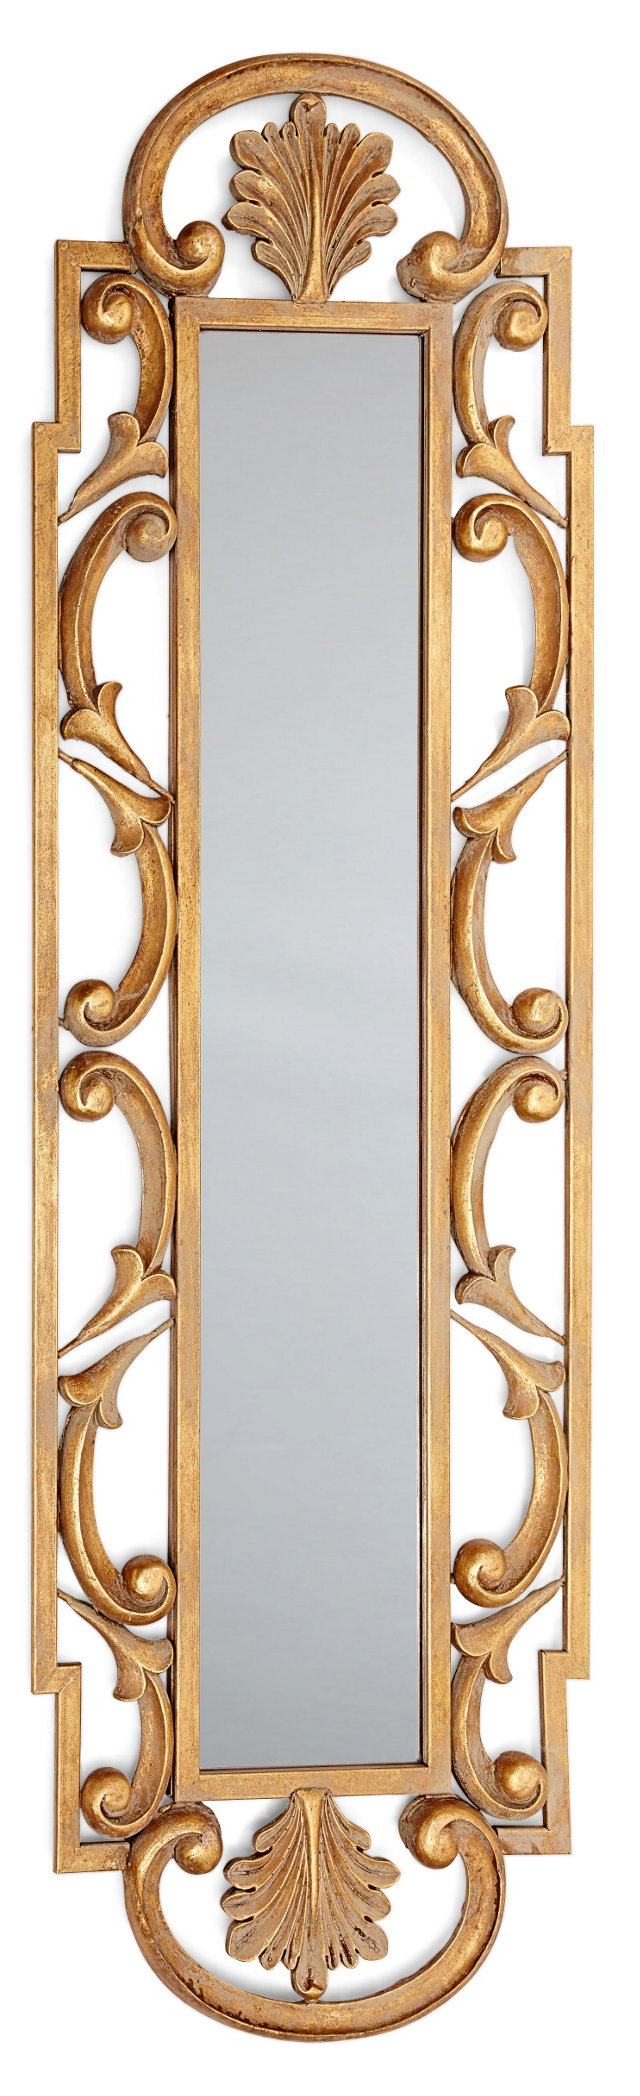 Thessaly Oversize Mirror, Gold